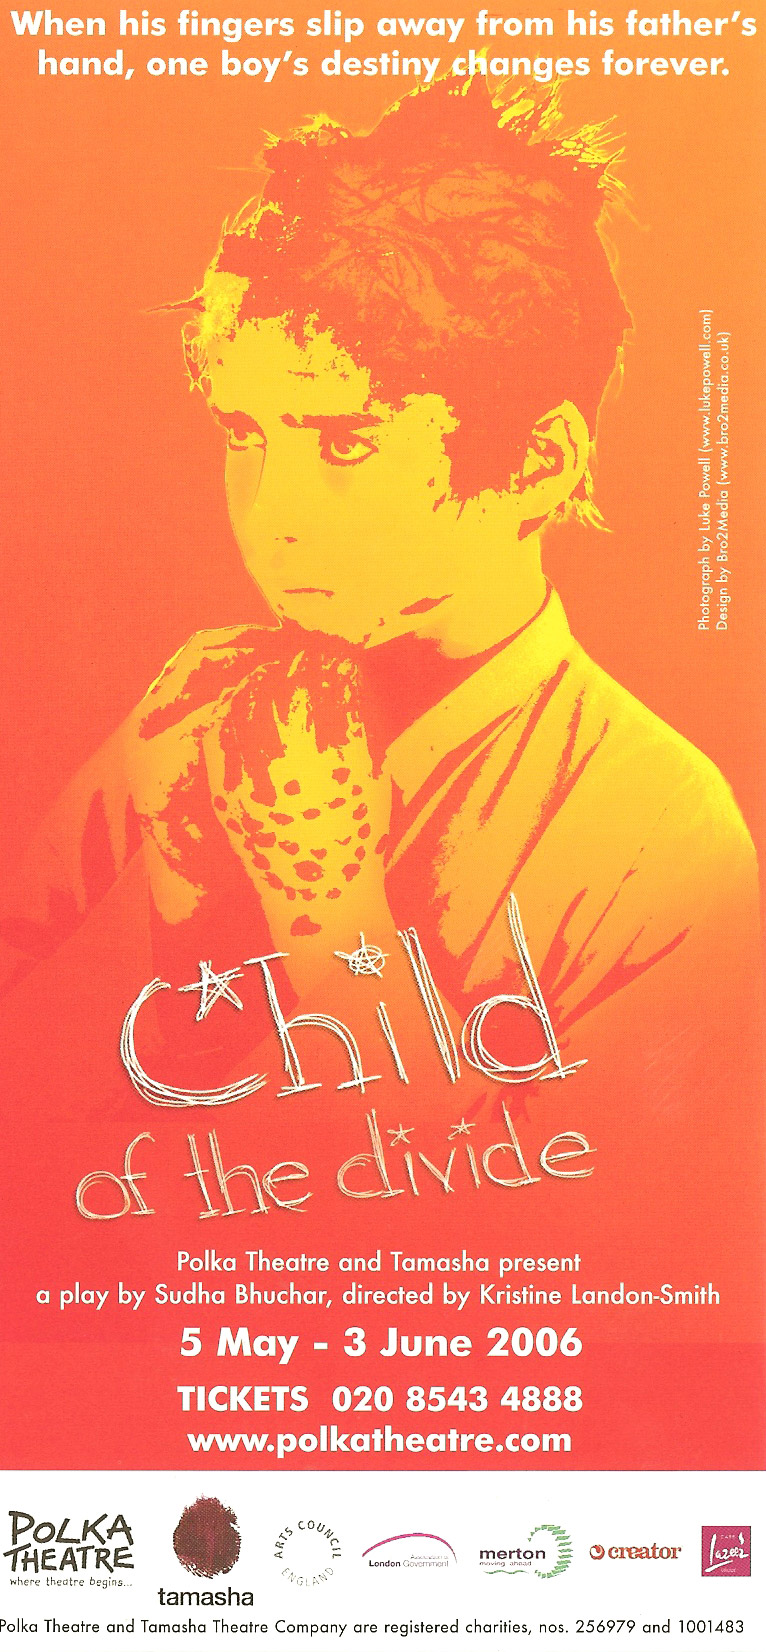 Child-of-divide_leaflet.jpg